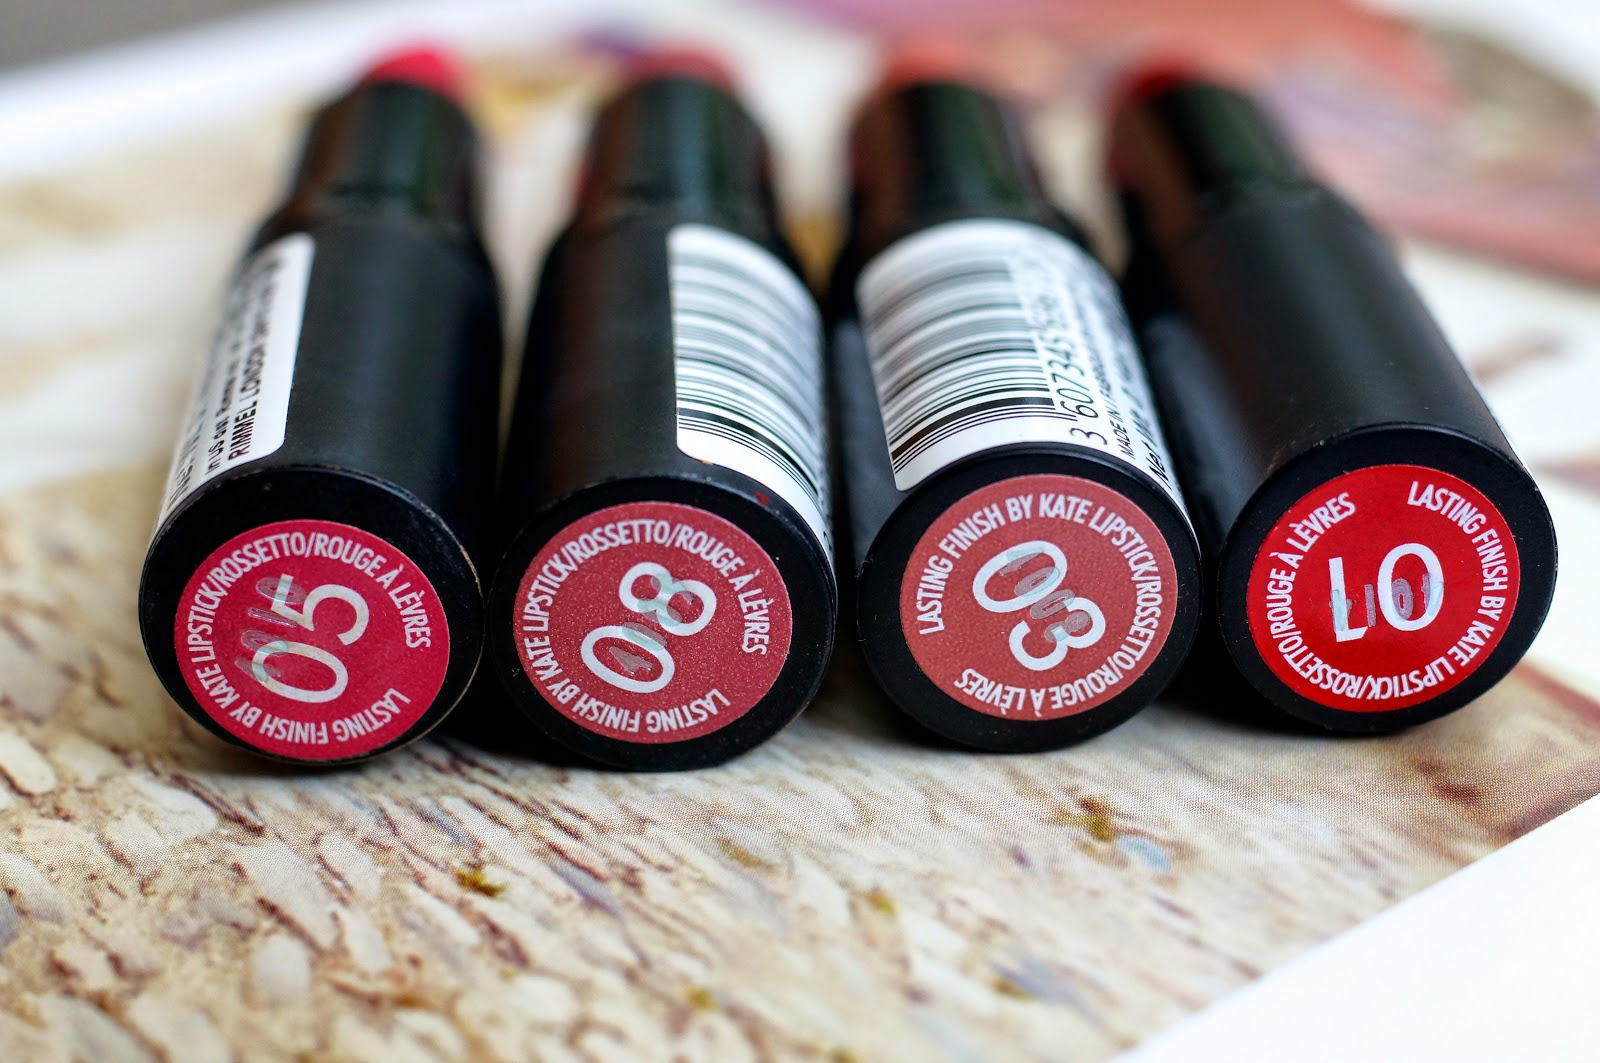 Emtalks: Kate Moss Rimmel Lipstick Collection Review: New Favourites